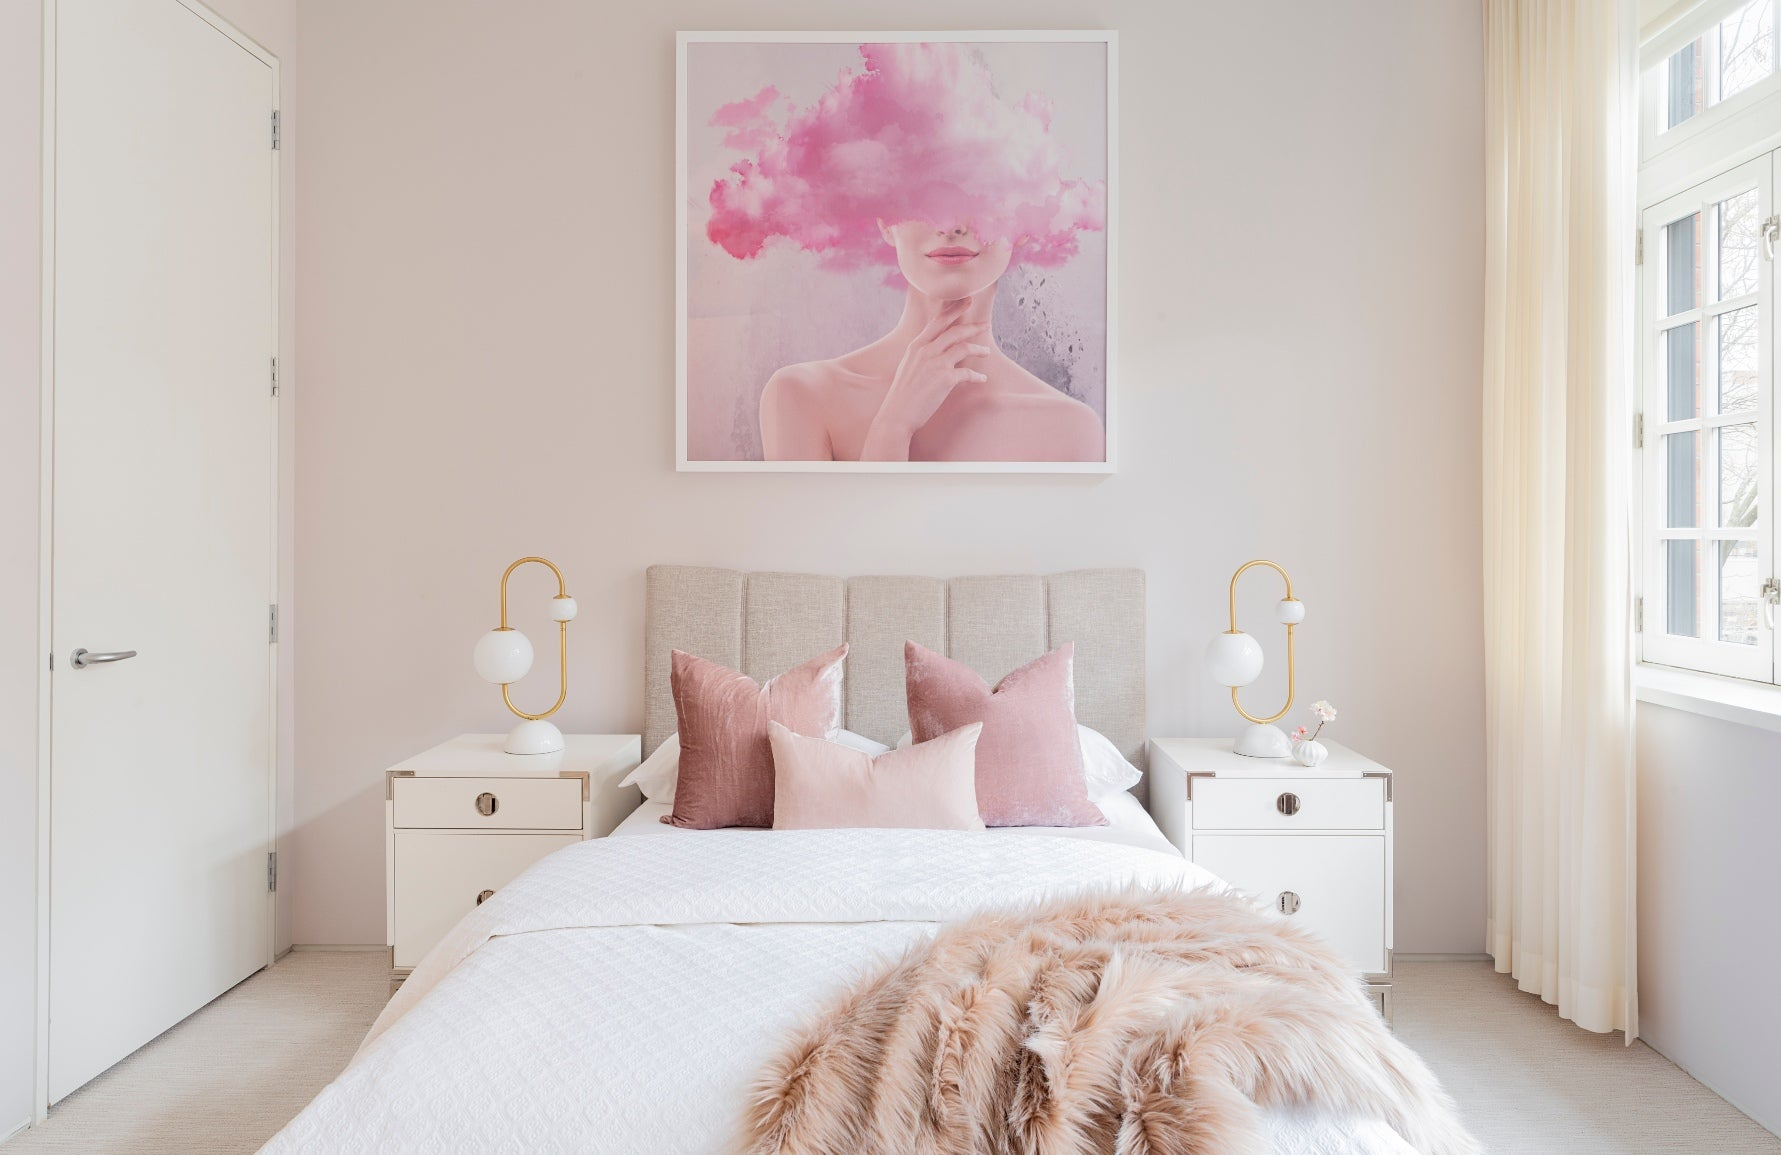 Shades of Pink Bedroom Ideas - How to Decorate Bedrooms with Pink - LuxDeco.com Style Guide